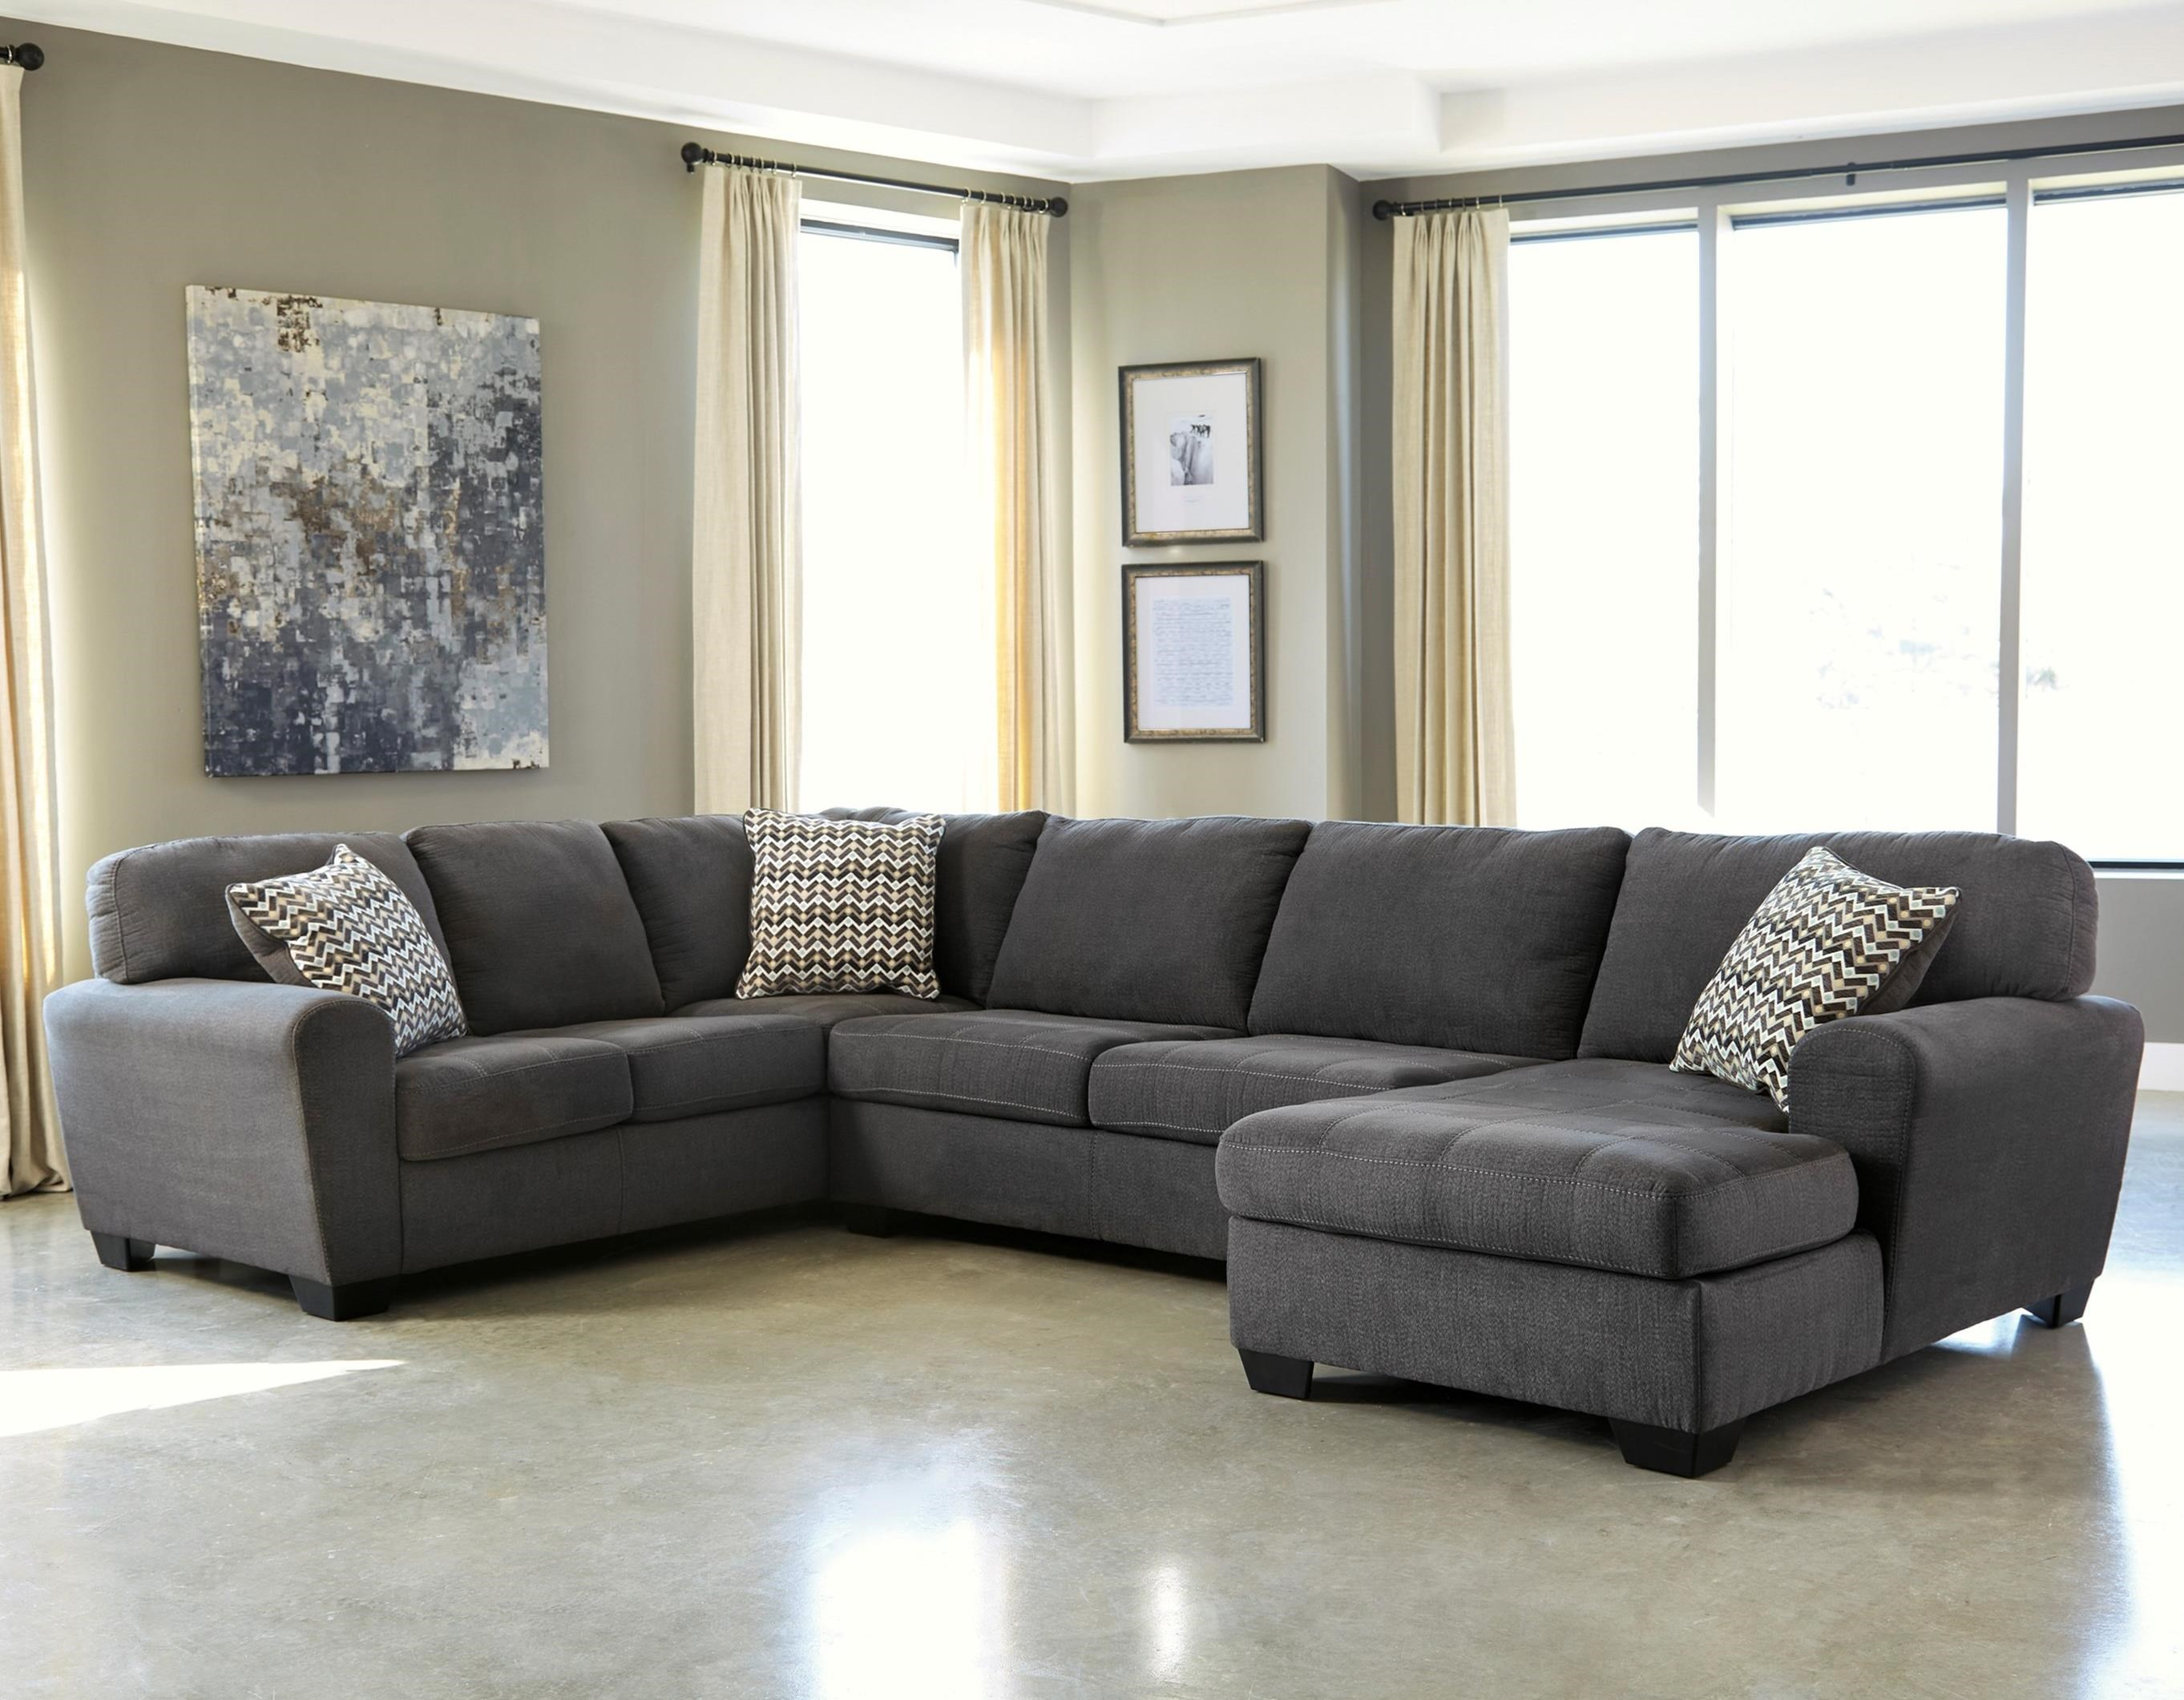 Ambee 3-Piece Sectional with Chaise by Benchcraft at Zak's Home Outlet